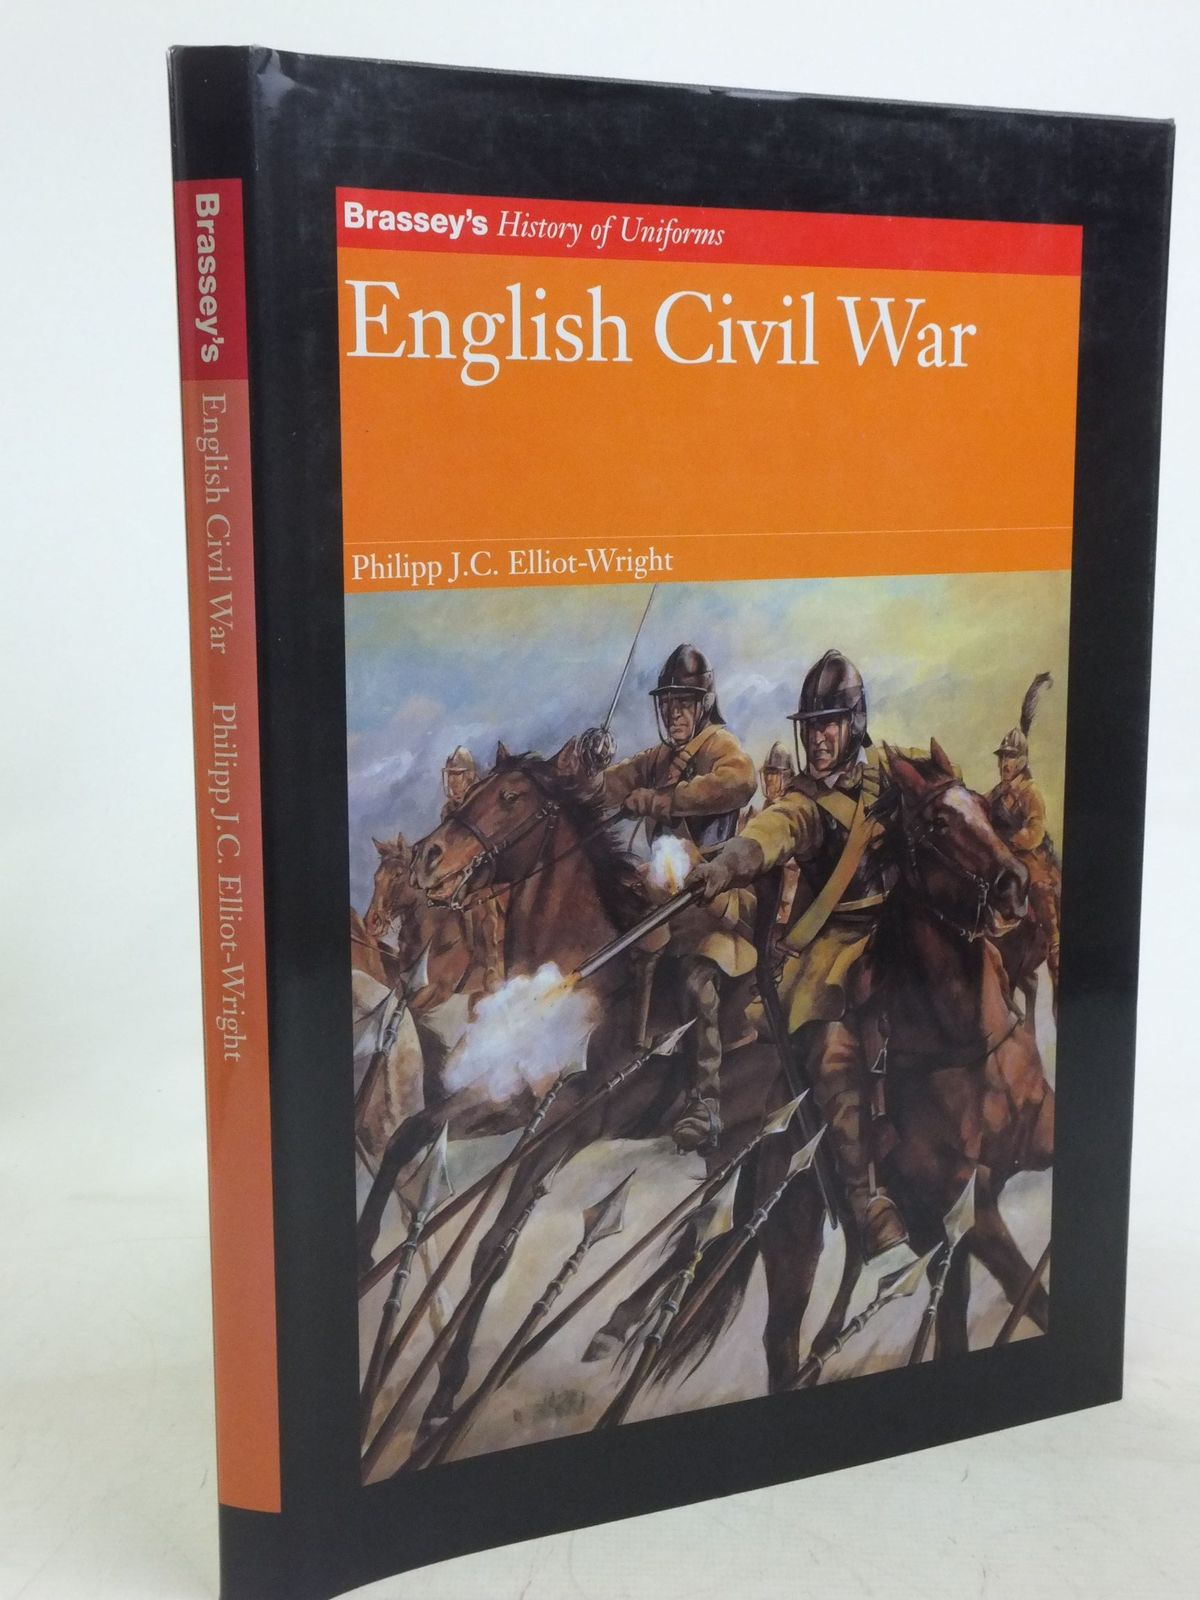 Photo of ENGLISH CIVIL WAR written by Elliot-Wright, Philipp J.C. illustrated by Hook, Christa published by Brassey's (STOCK CODE: 1712543)  for sale by Stella & Rose's Books